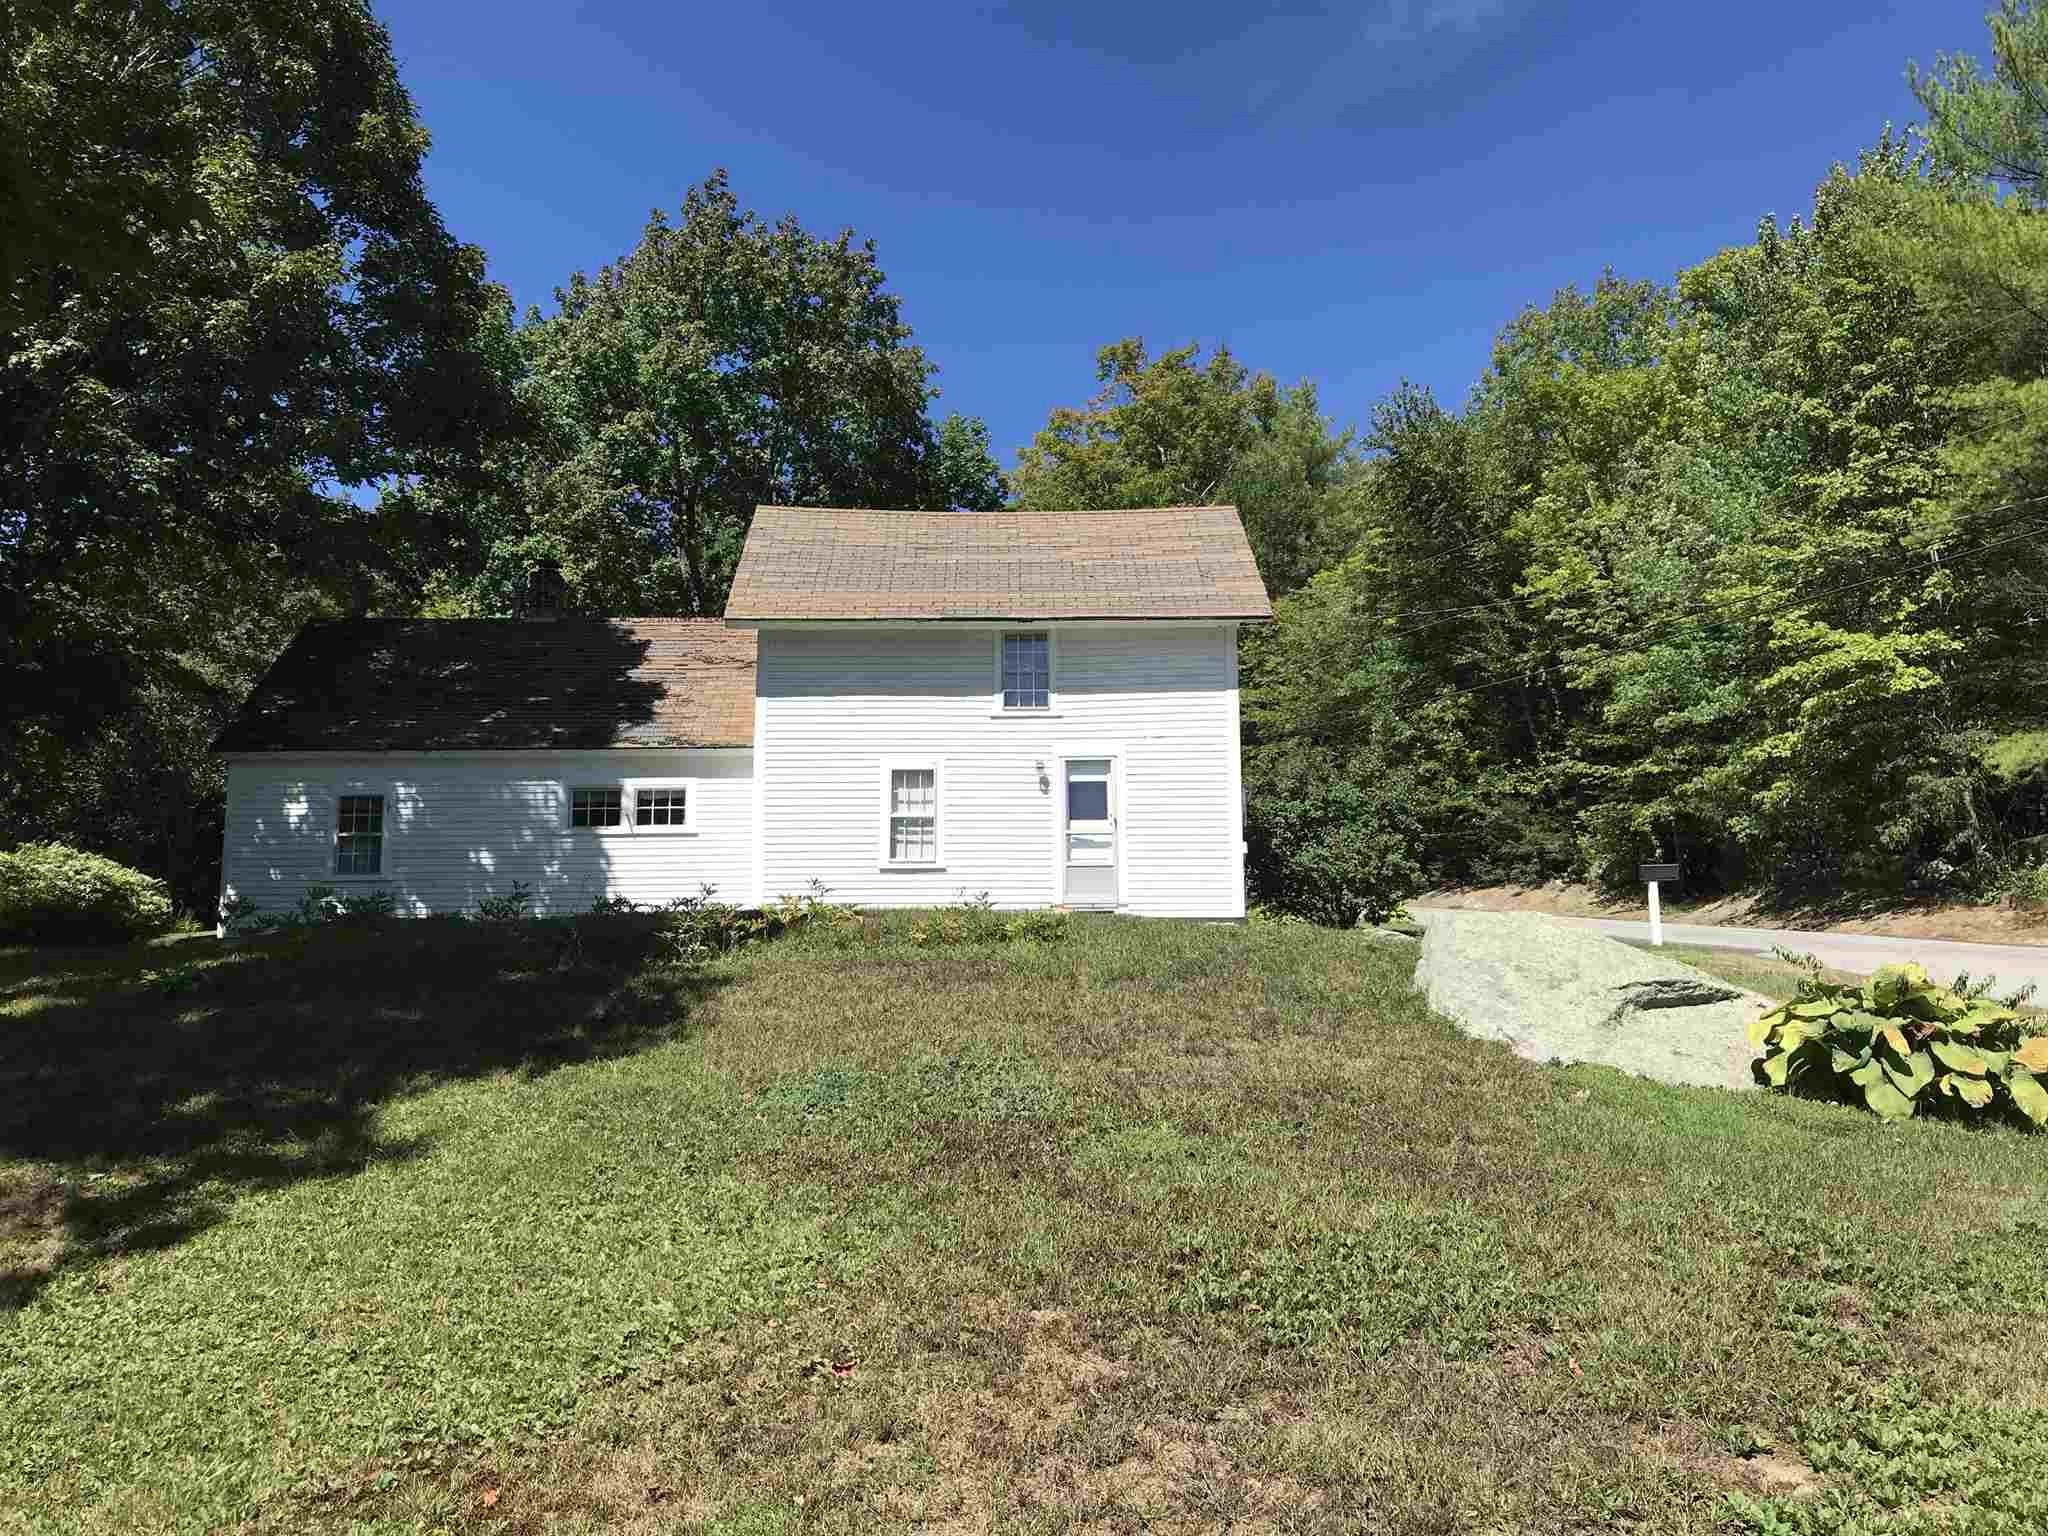 MLS 4827207: 580 Old Main Street, New London NH